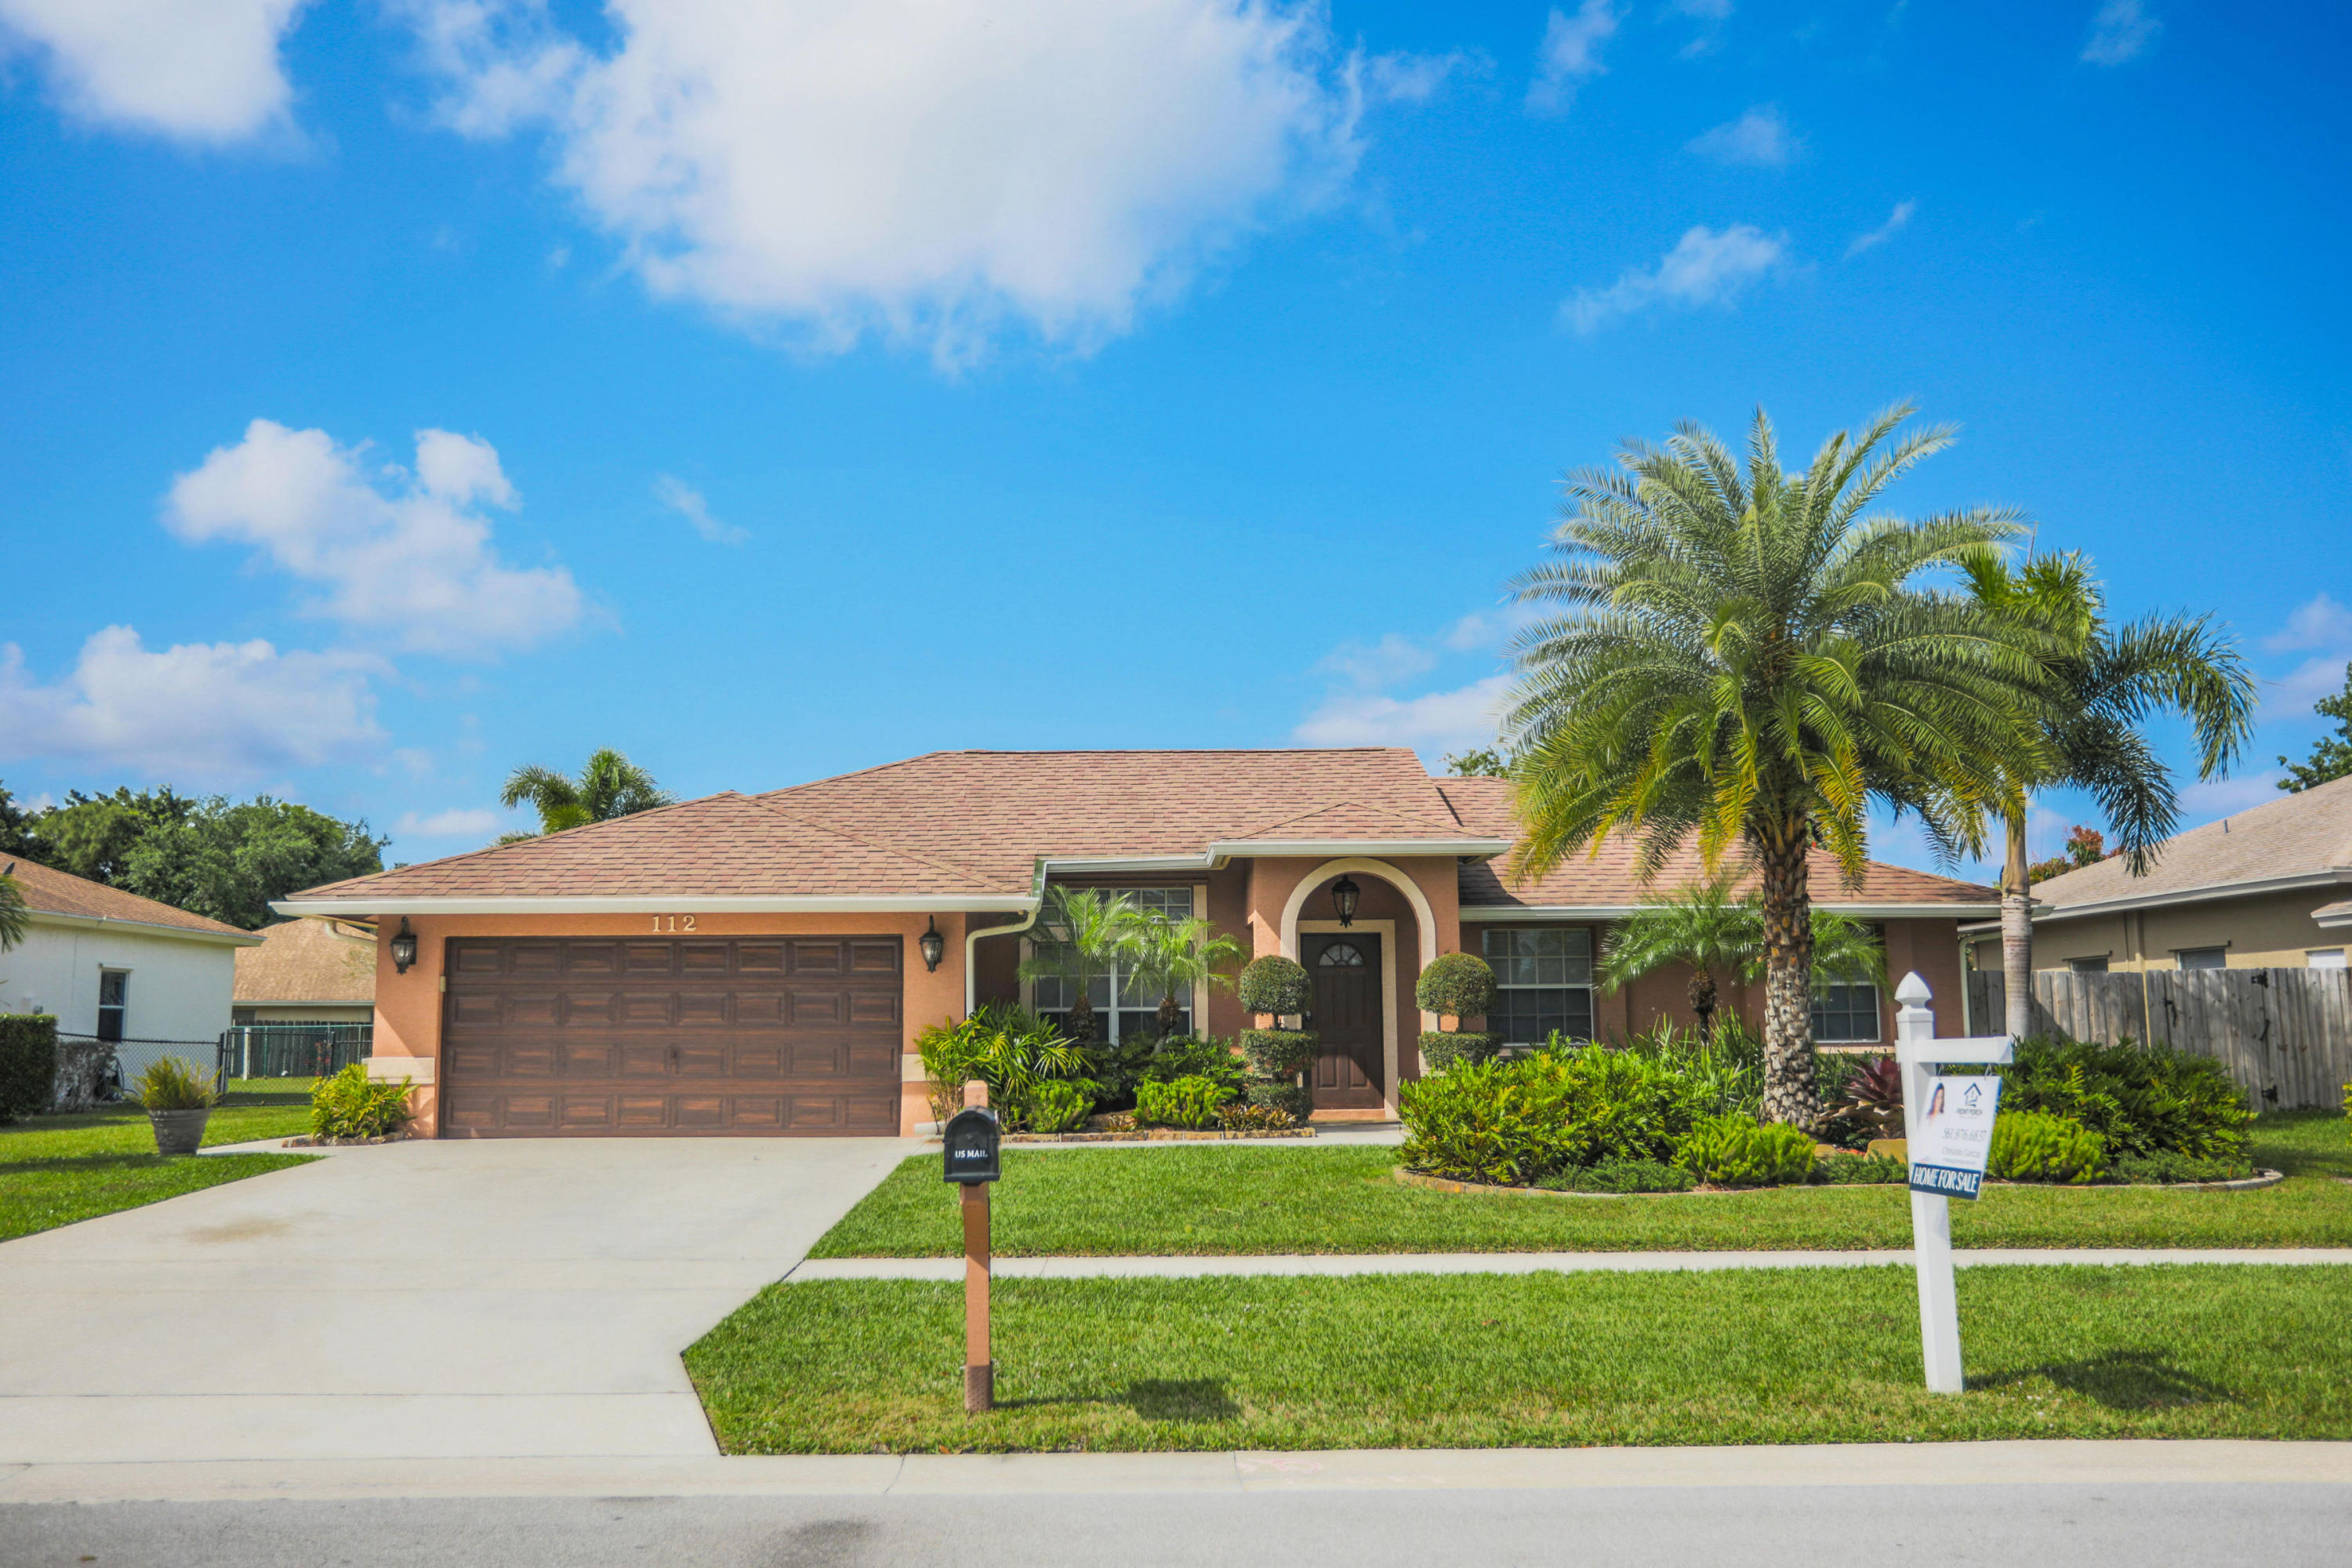 Home for sale in Saratoge Pines Royal Palm Beach Florida